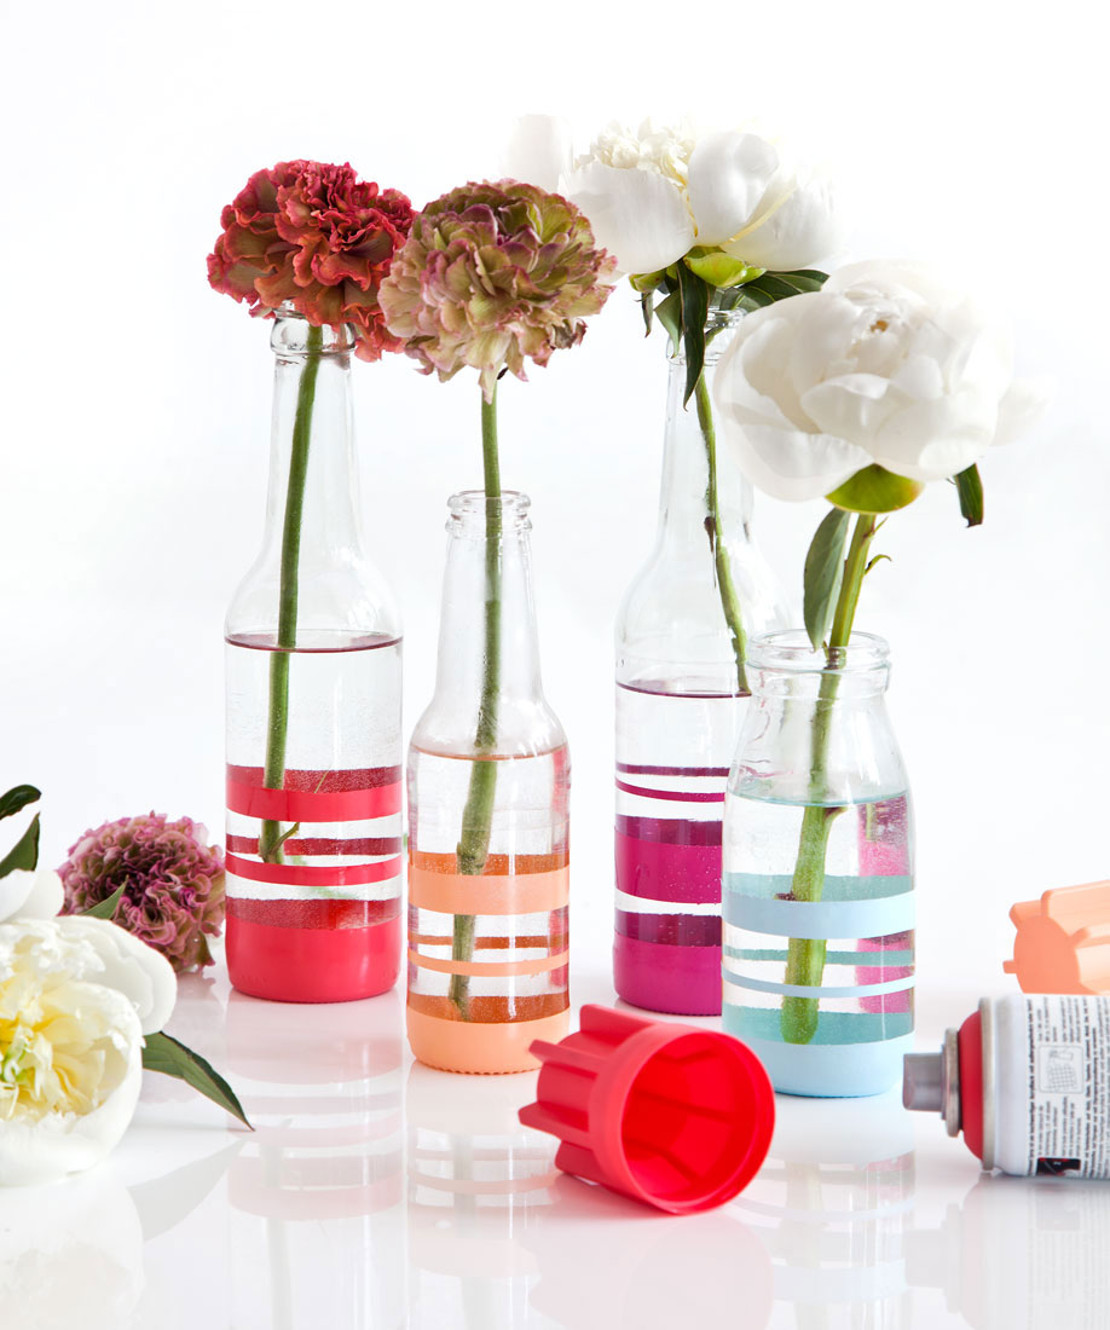 Westwing_DIY-vases-rayés-colorés